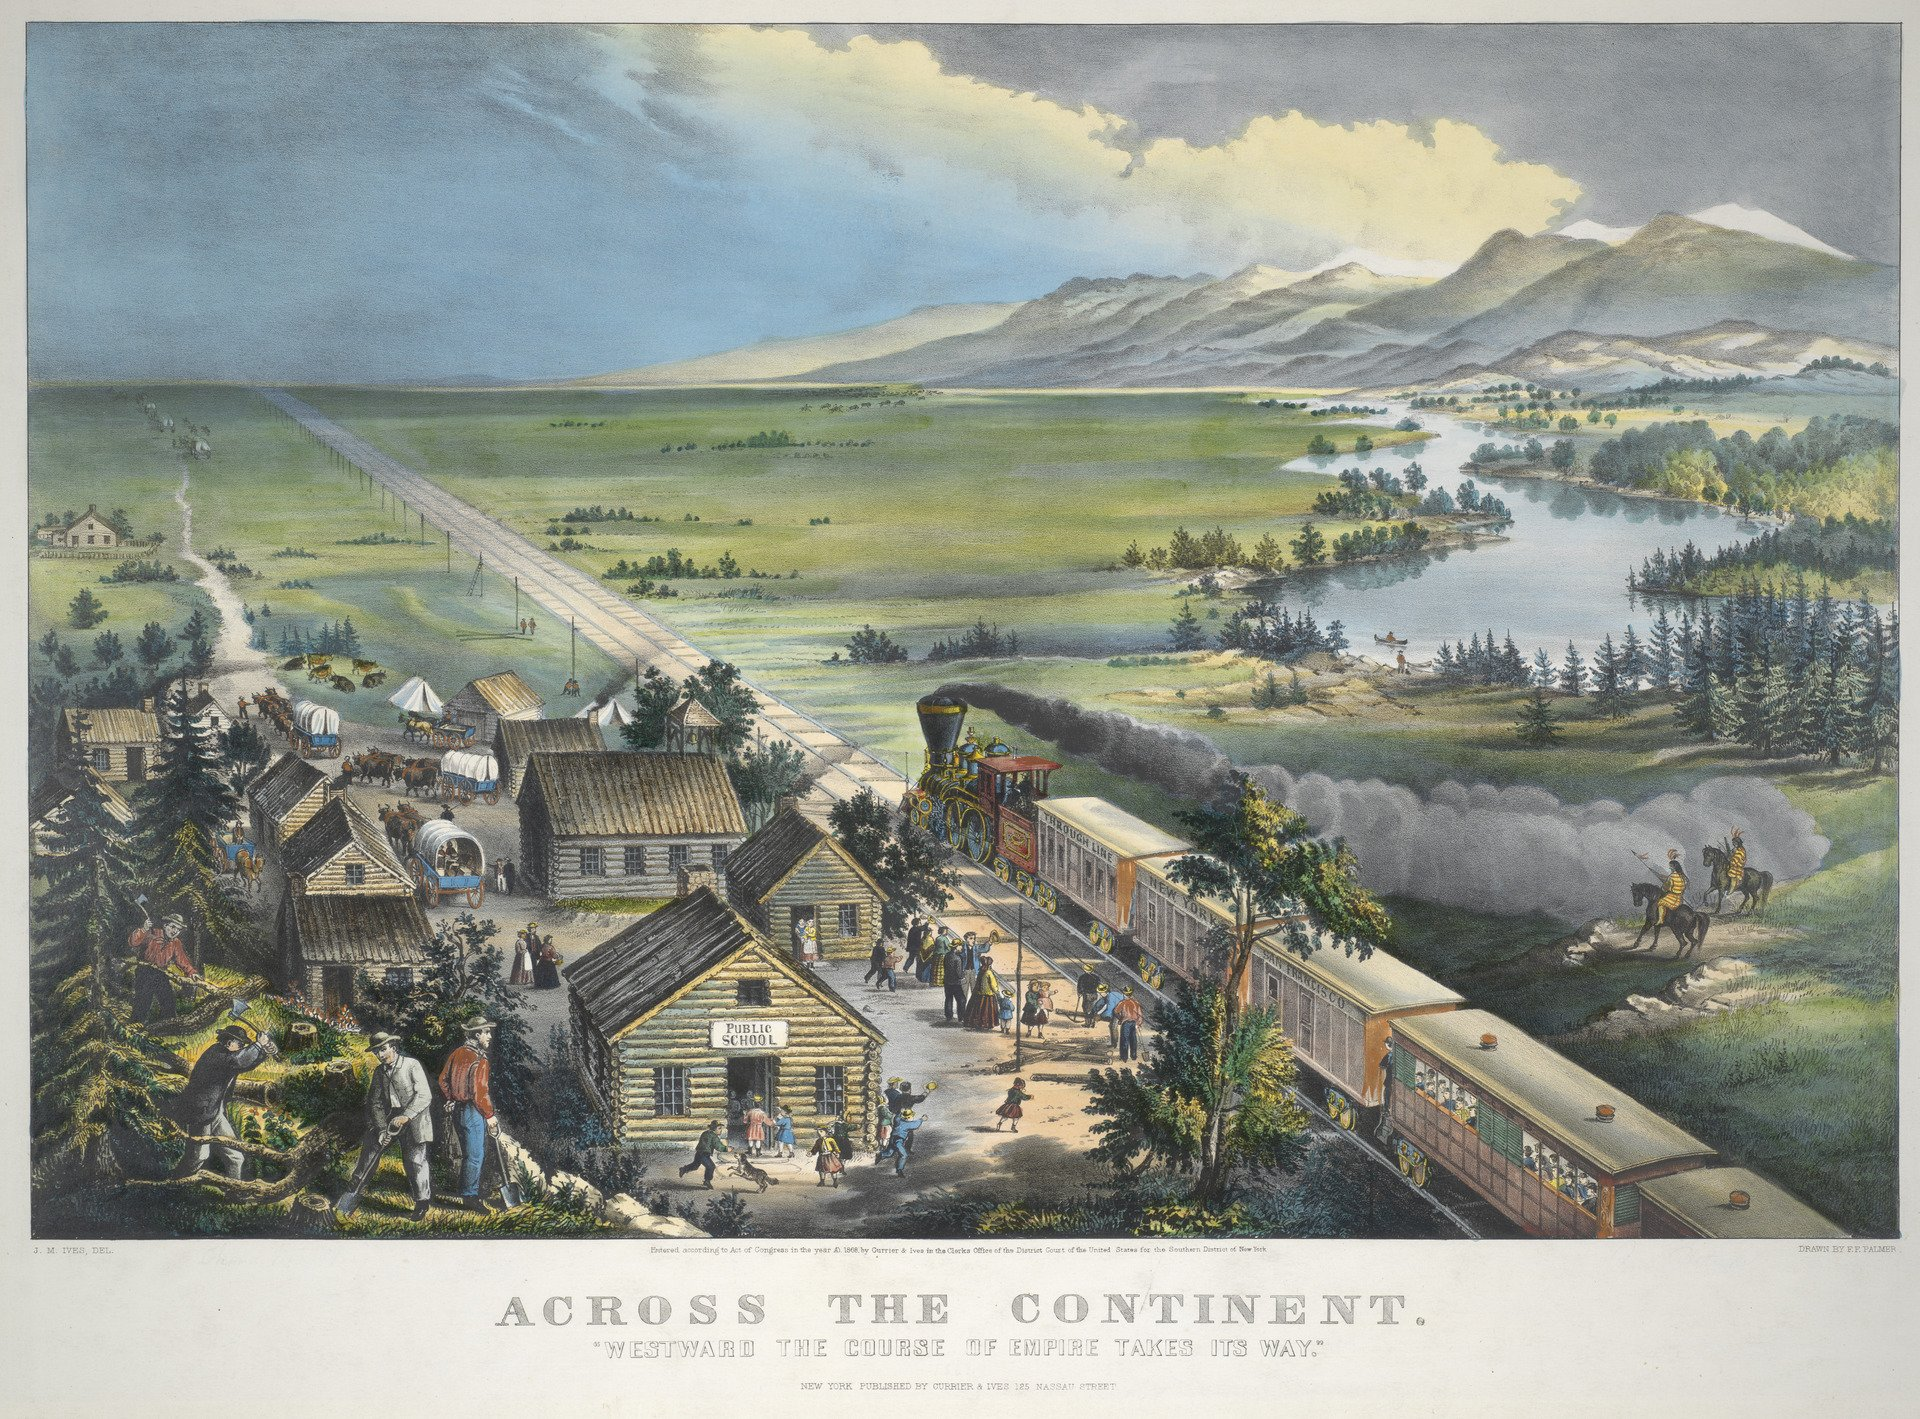 Currier & Ives, Across the Continent